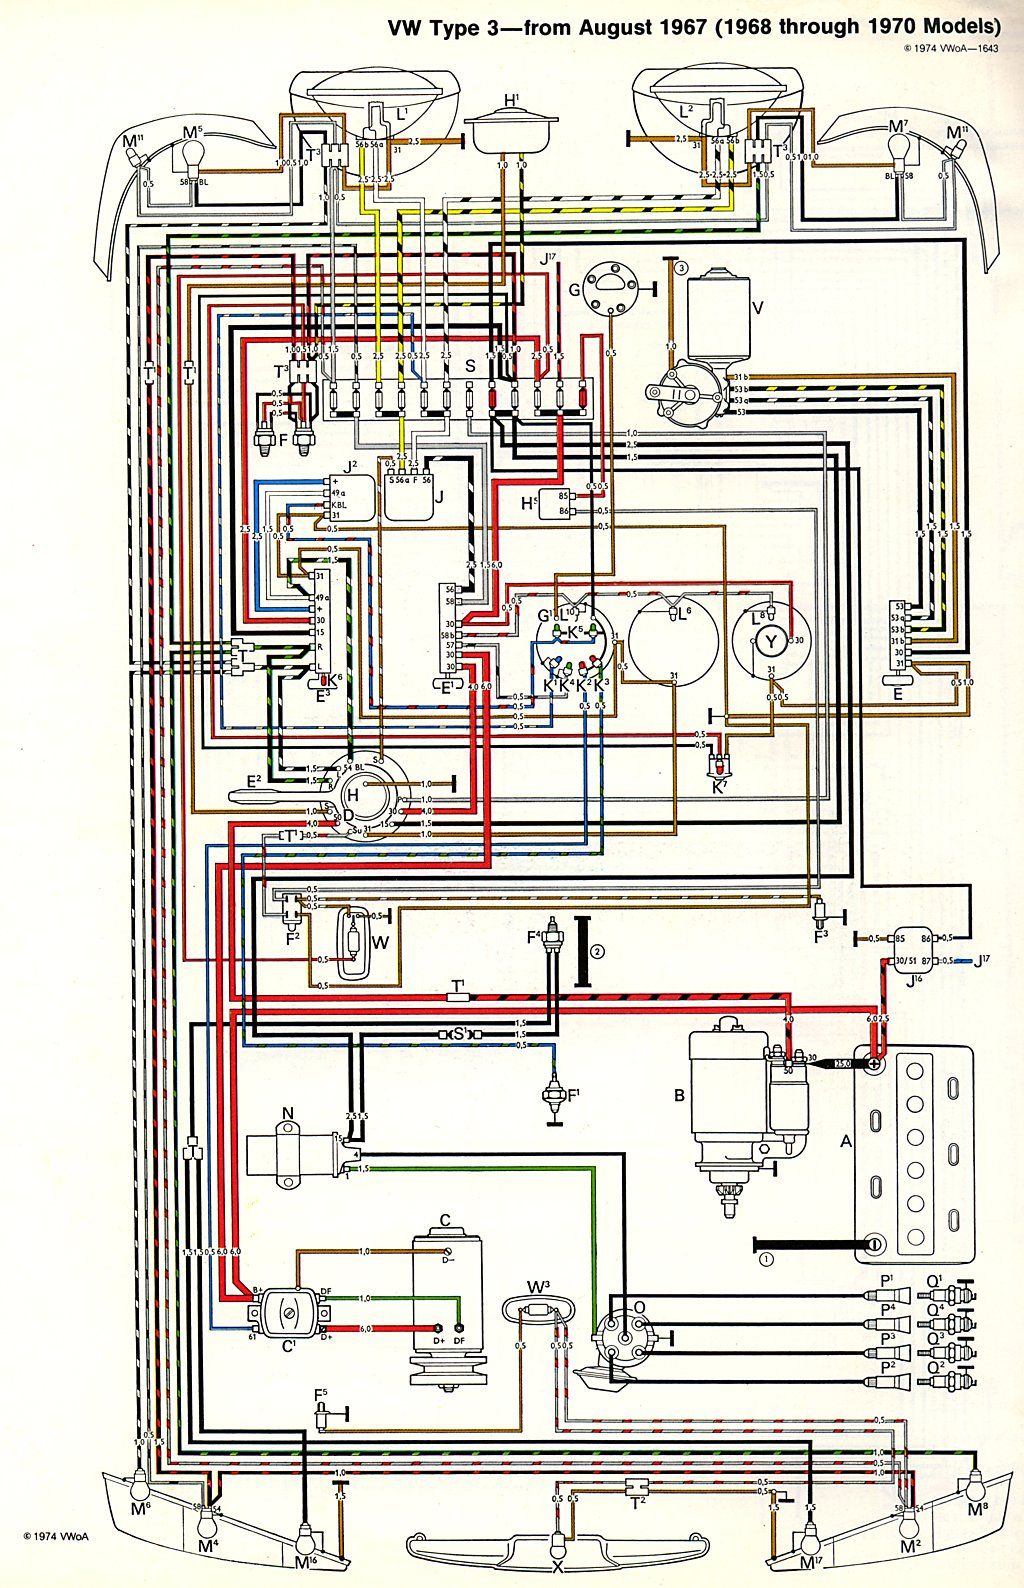 type3_6870 1971 karmann ghia wiring diagram karmann ghia wiring harness 1967 porsche 911 wiring diagram at creativeand.co